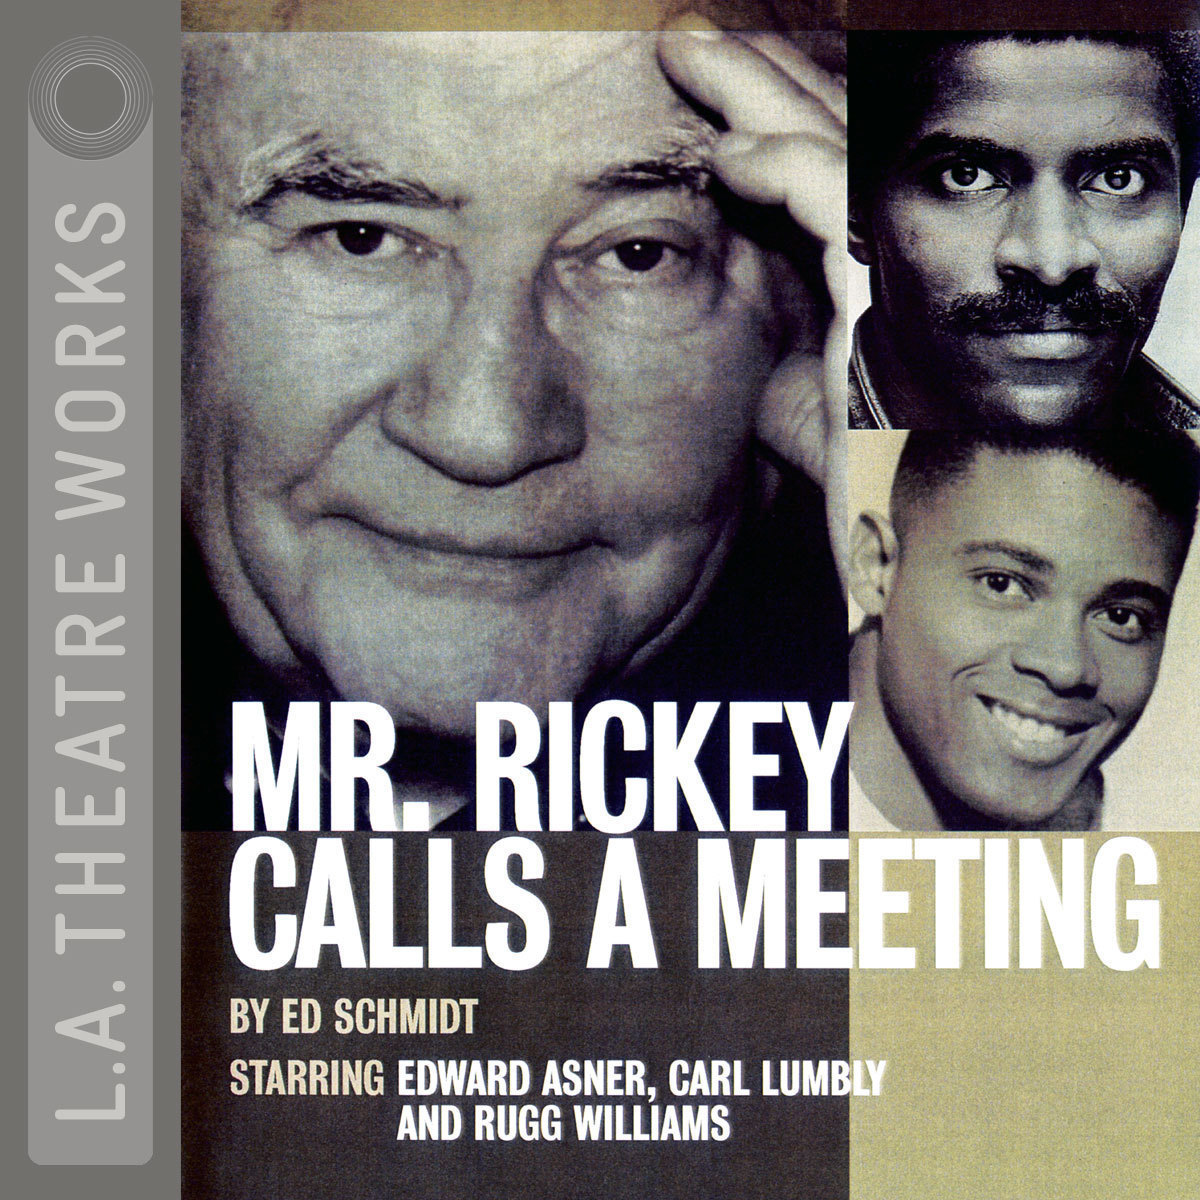 Printable Mr. Rickey Calls a Meeting Audiobook Cover Art